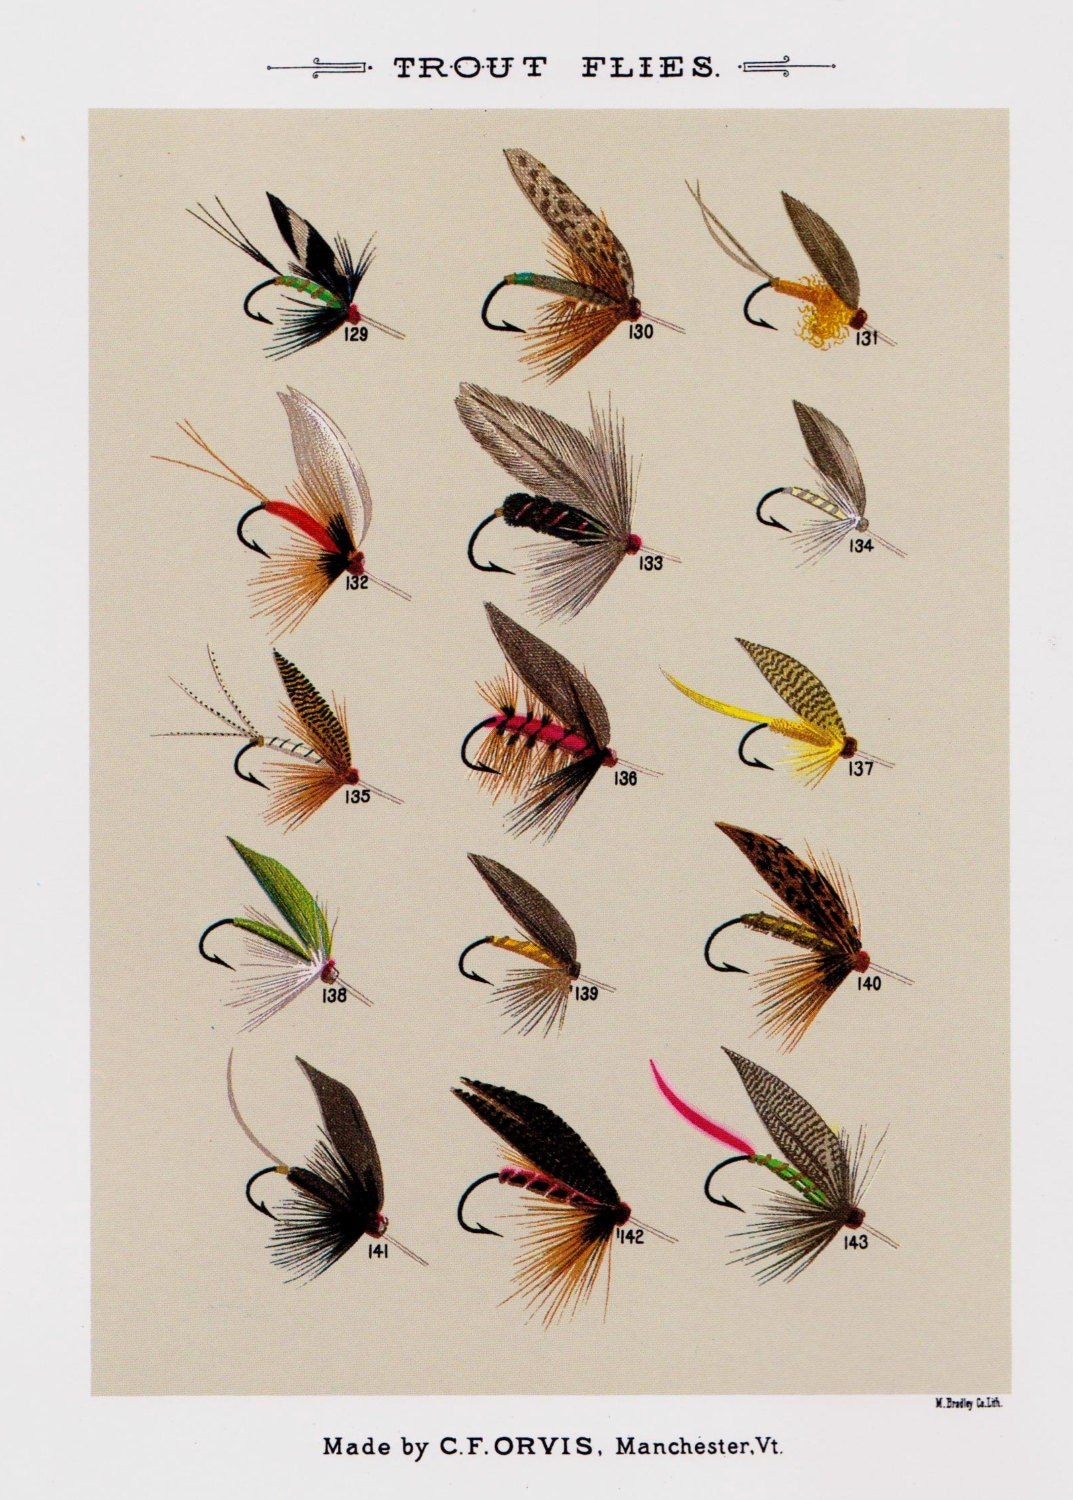 Fly fishing print trout fishing flies print beach house decor for Fly fishing posters